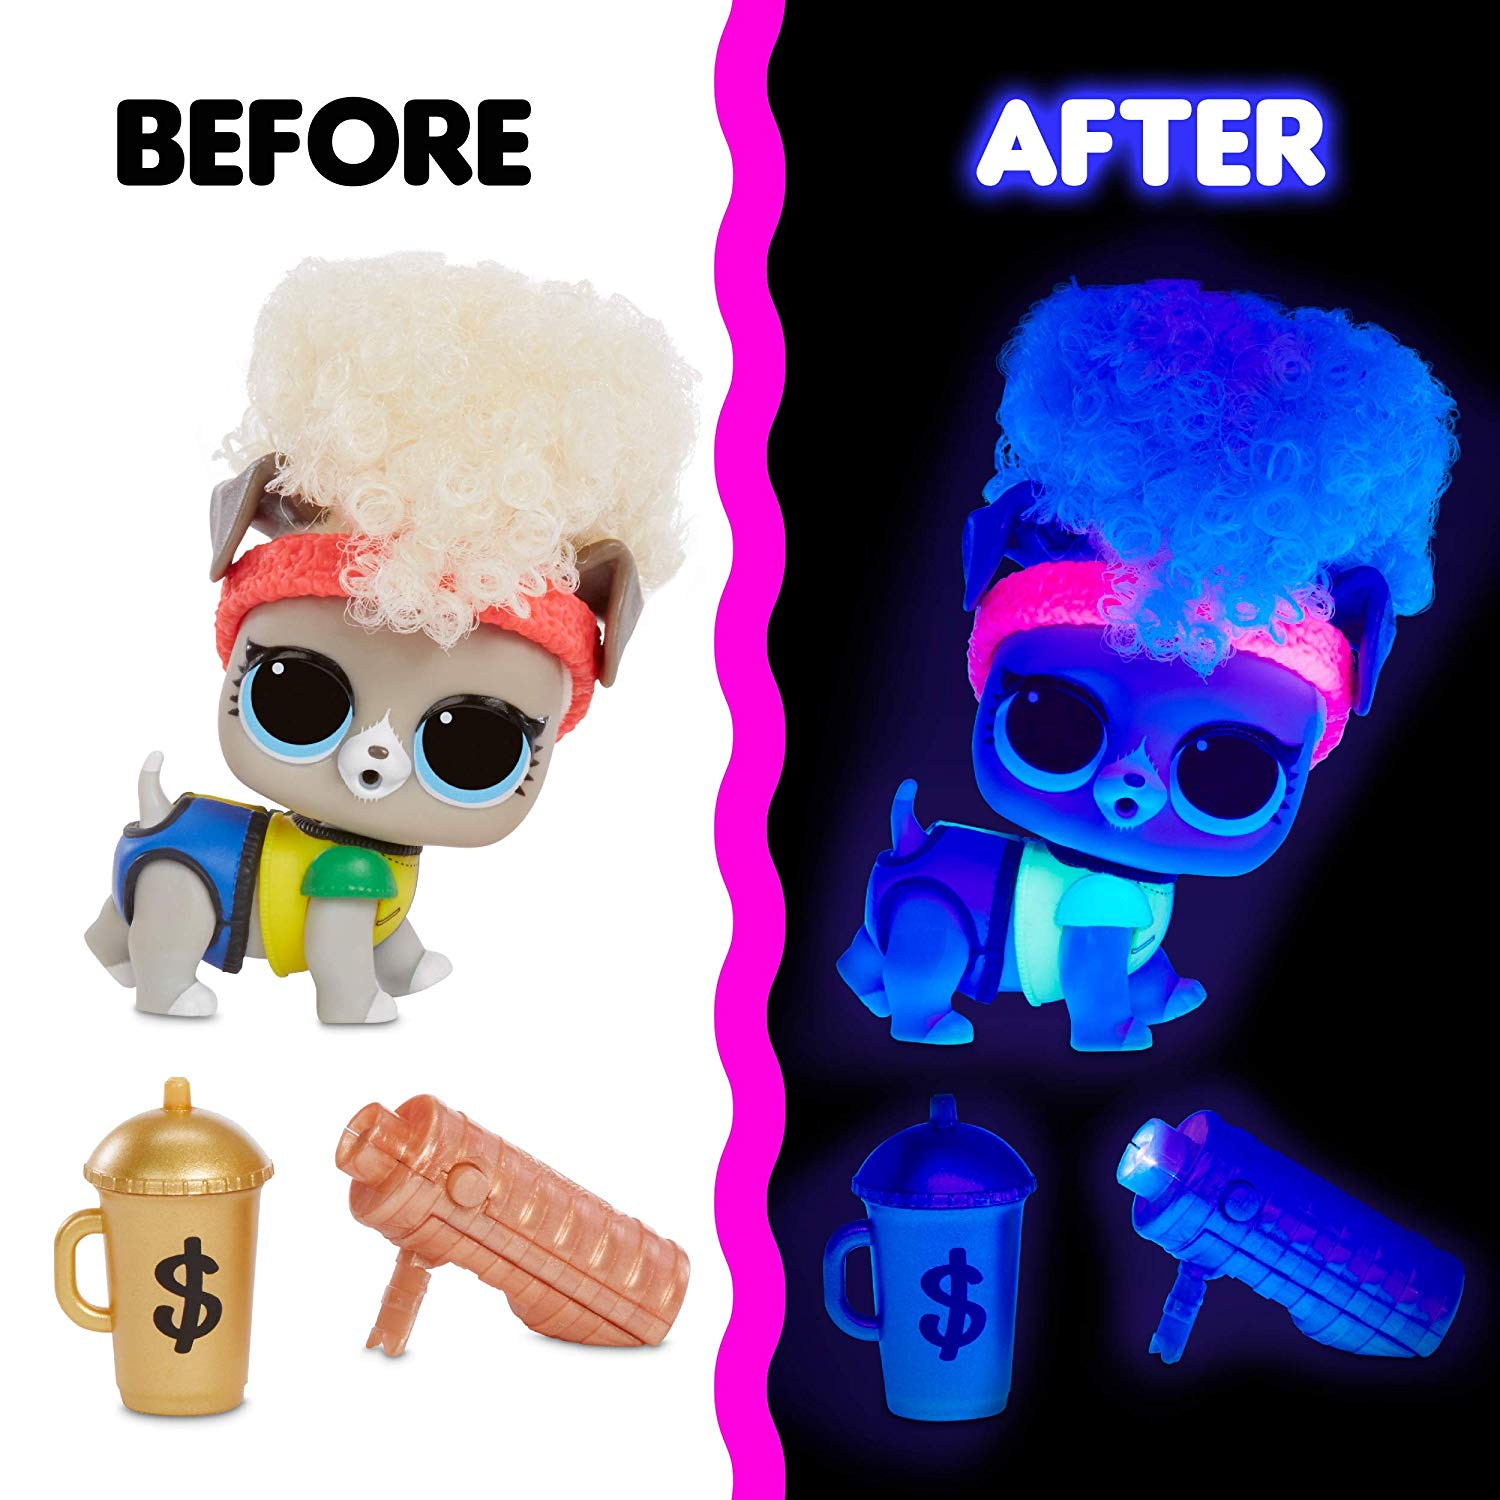 L.O.L. Surprise! Lights Pets with Real Hair & 9 Surprises Including Black Light Surprises pre-order now